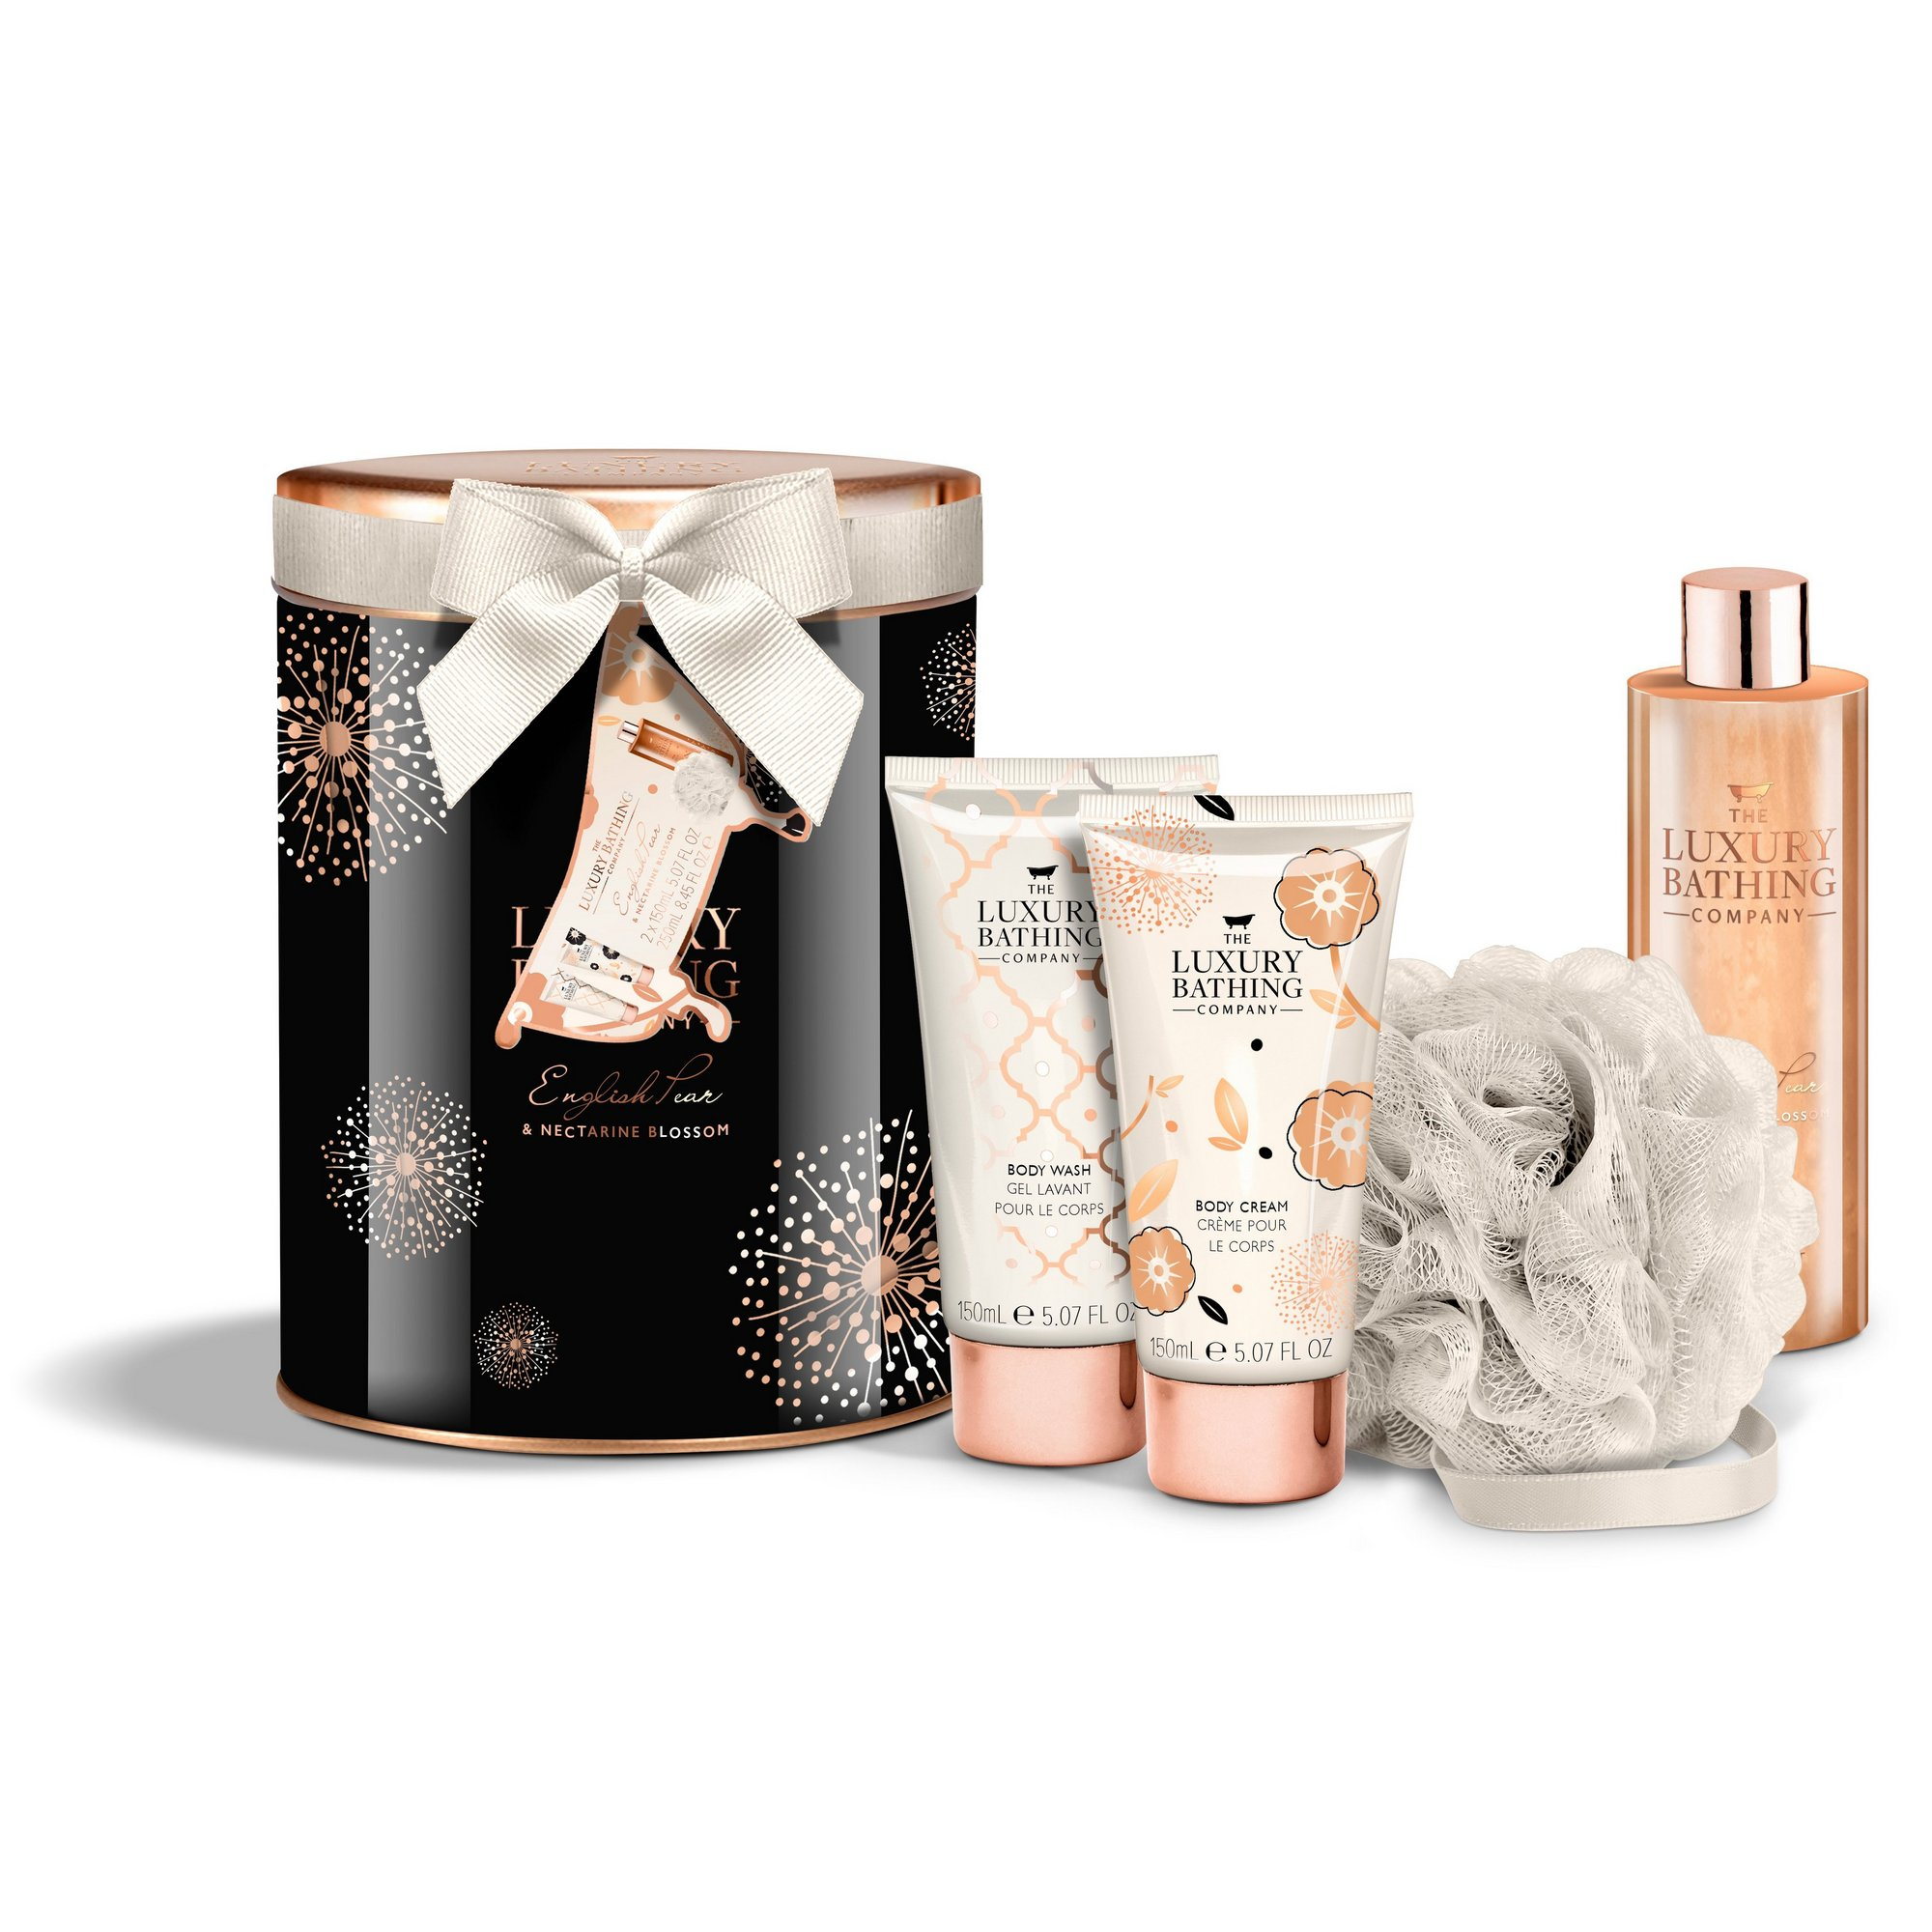 Image of Grace Cole Luxury Bathing Collection English Pear and Nectarine B...